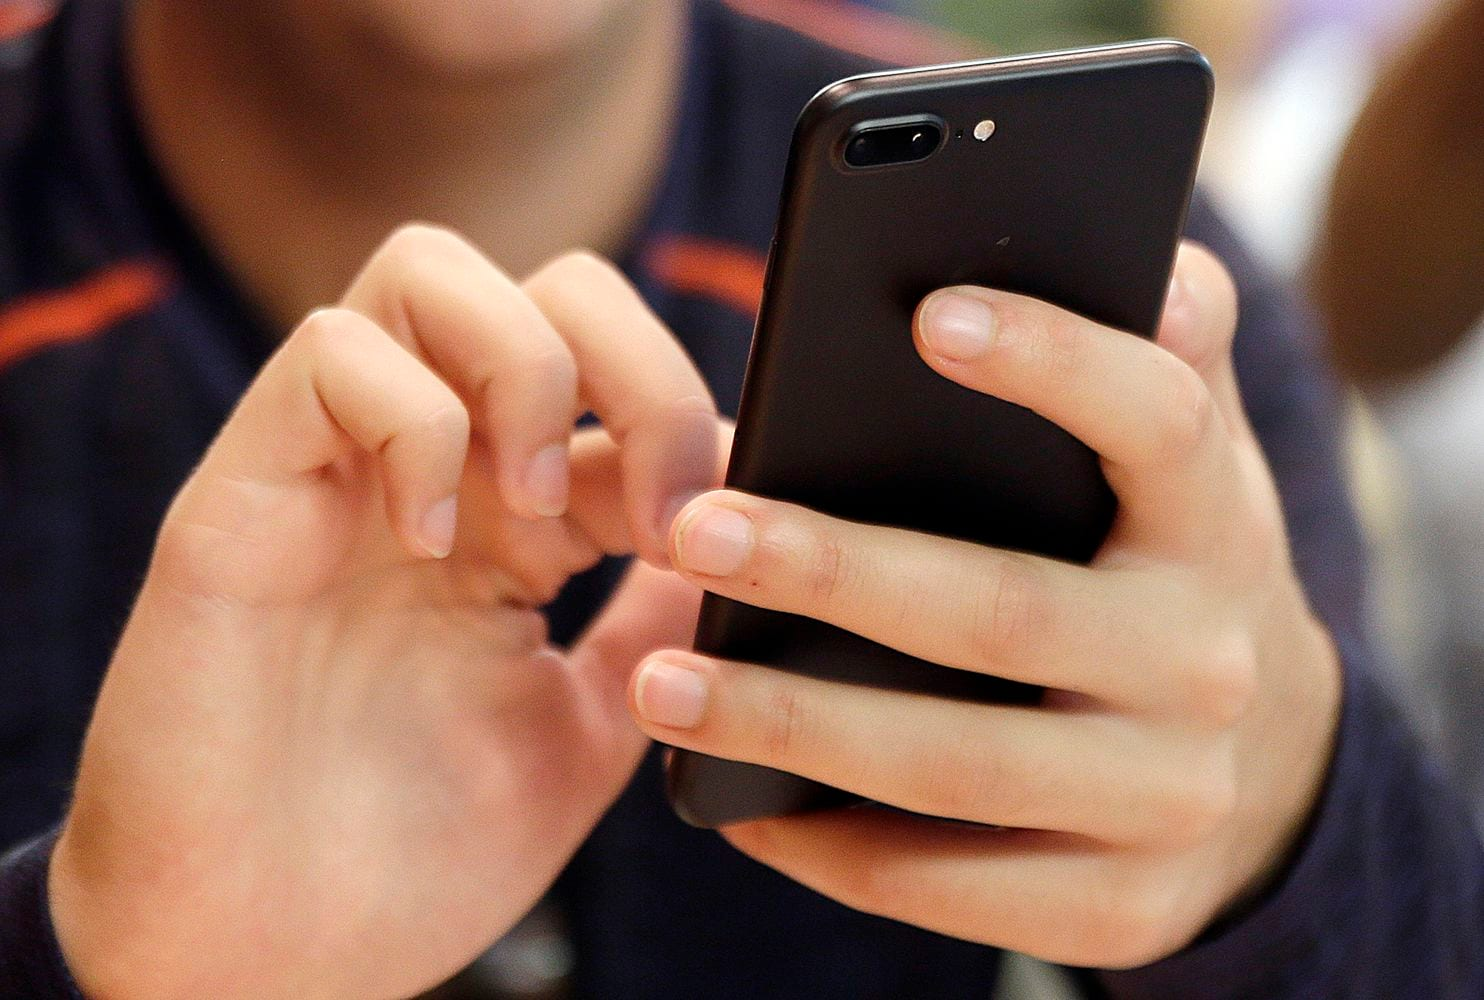 Smartphone addict couldn   t move fingers after using device for a week